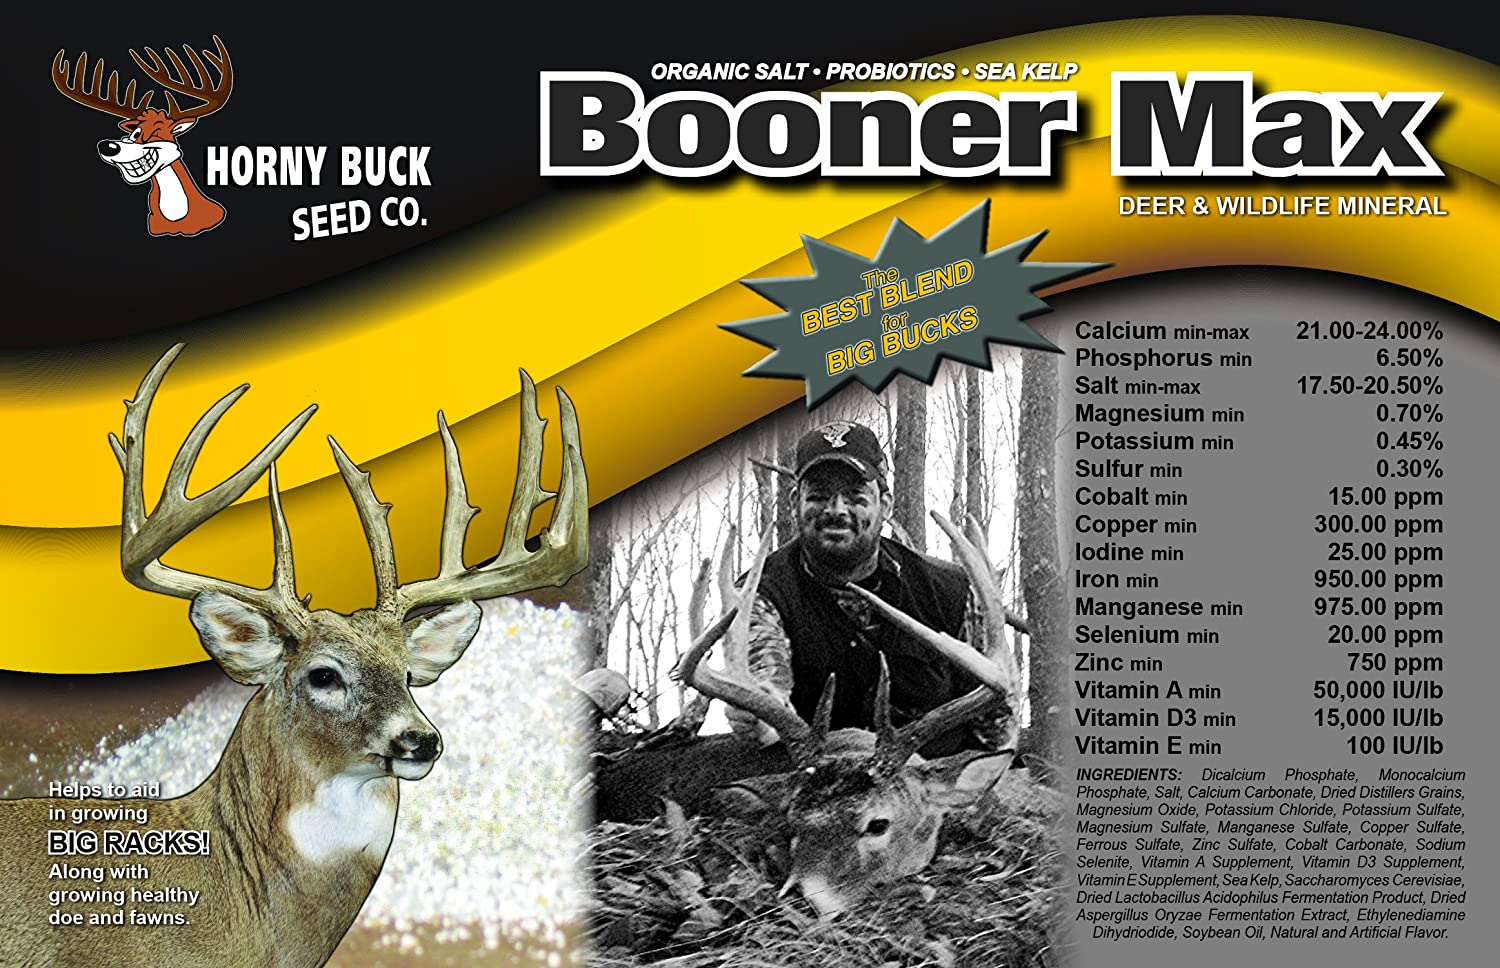 Horny Buck Seed Ranking TOP1 Co. Direct stock discount Booner Max Deer Wildlife Attractant Mineral